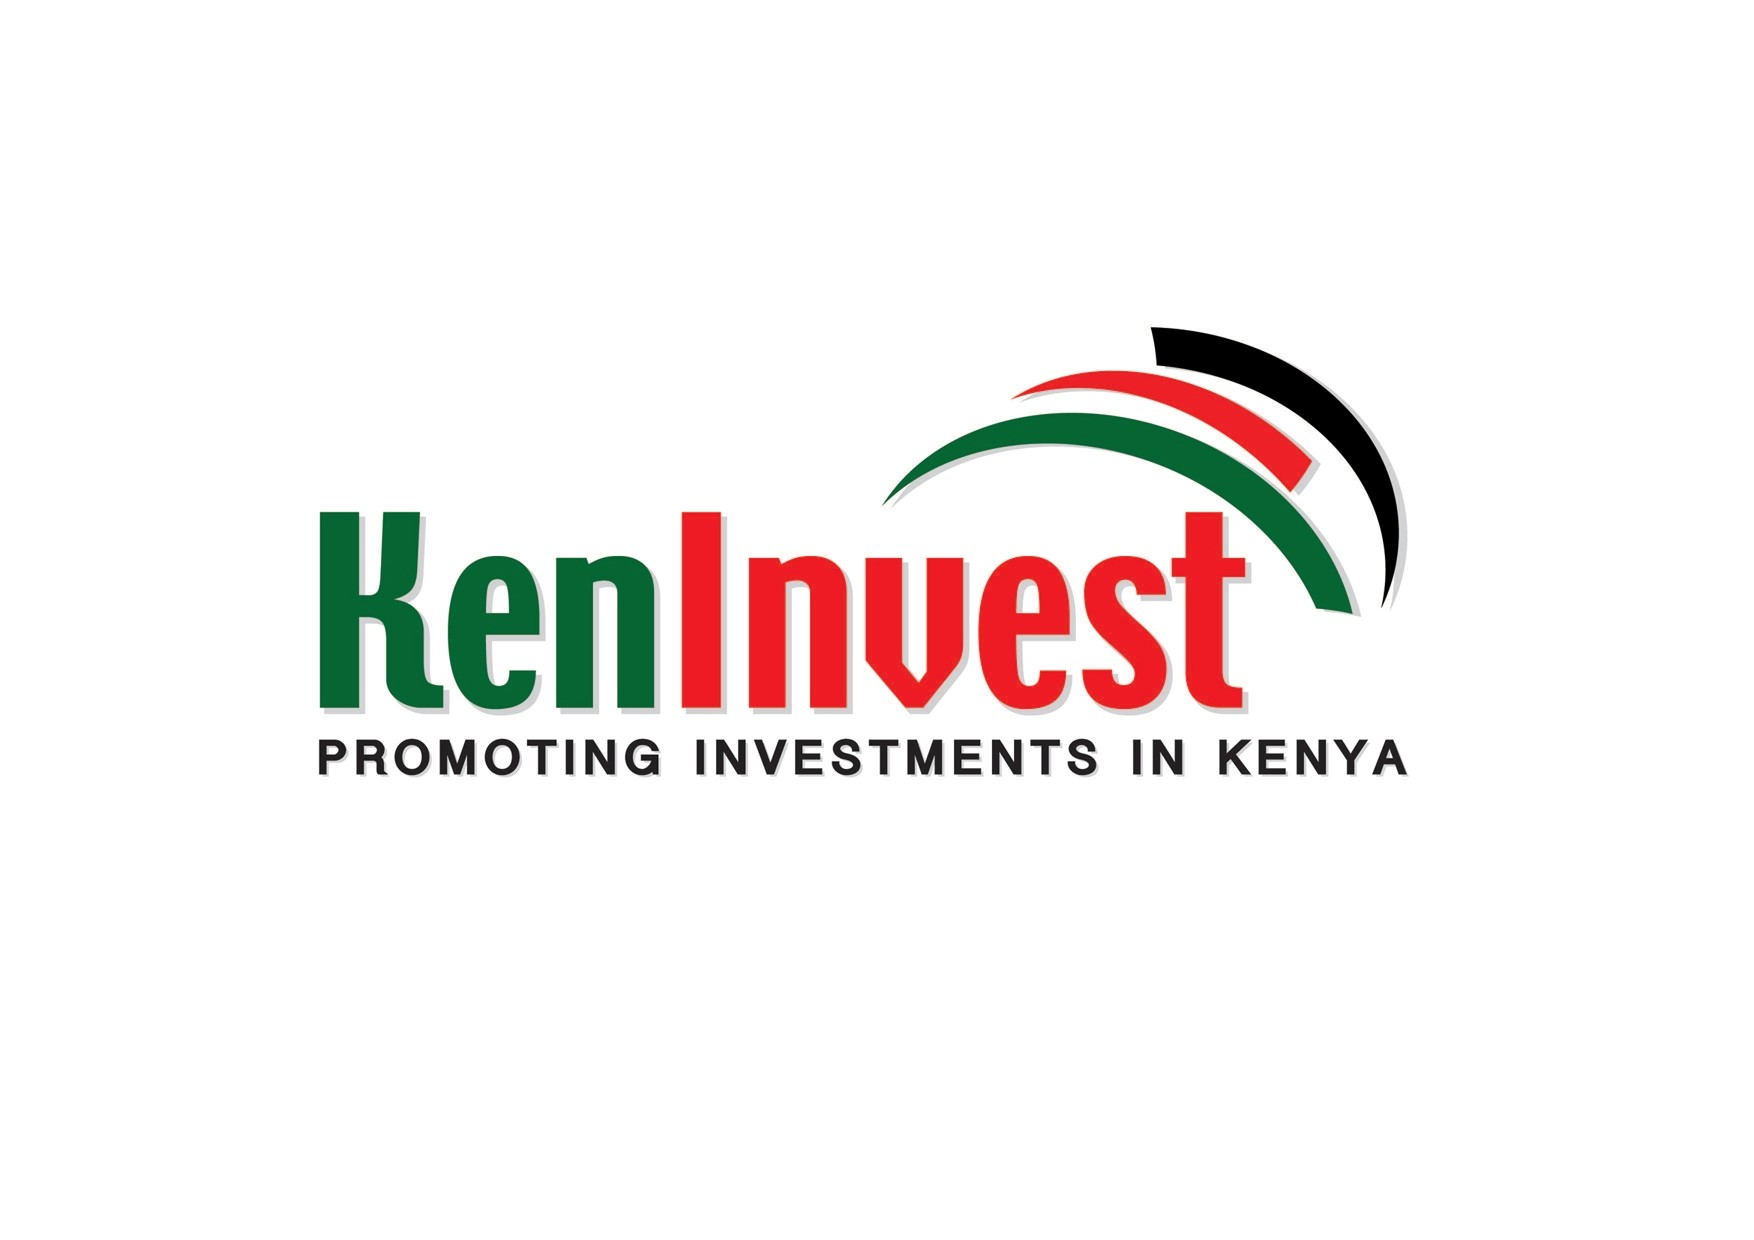 Kenya investment authority search google aixi investments for 2021